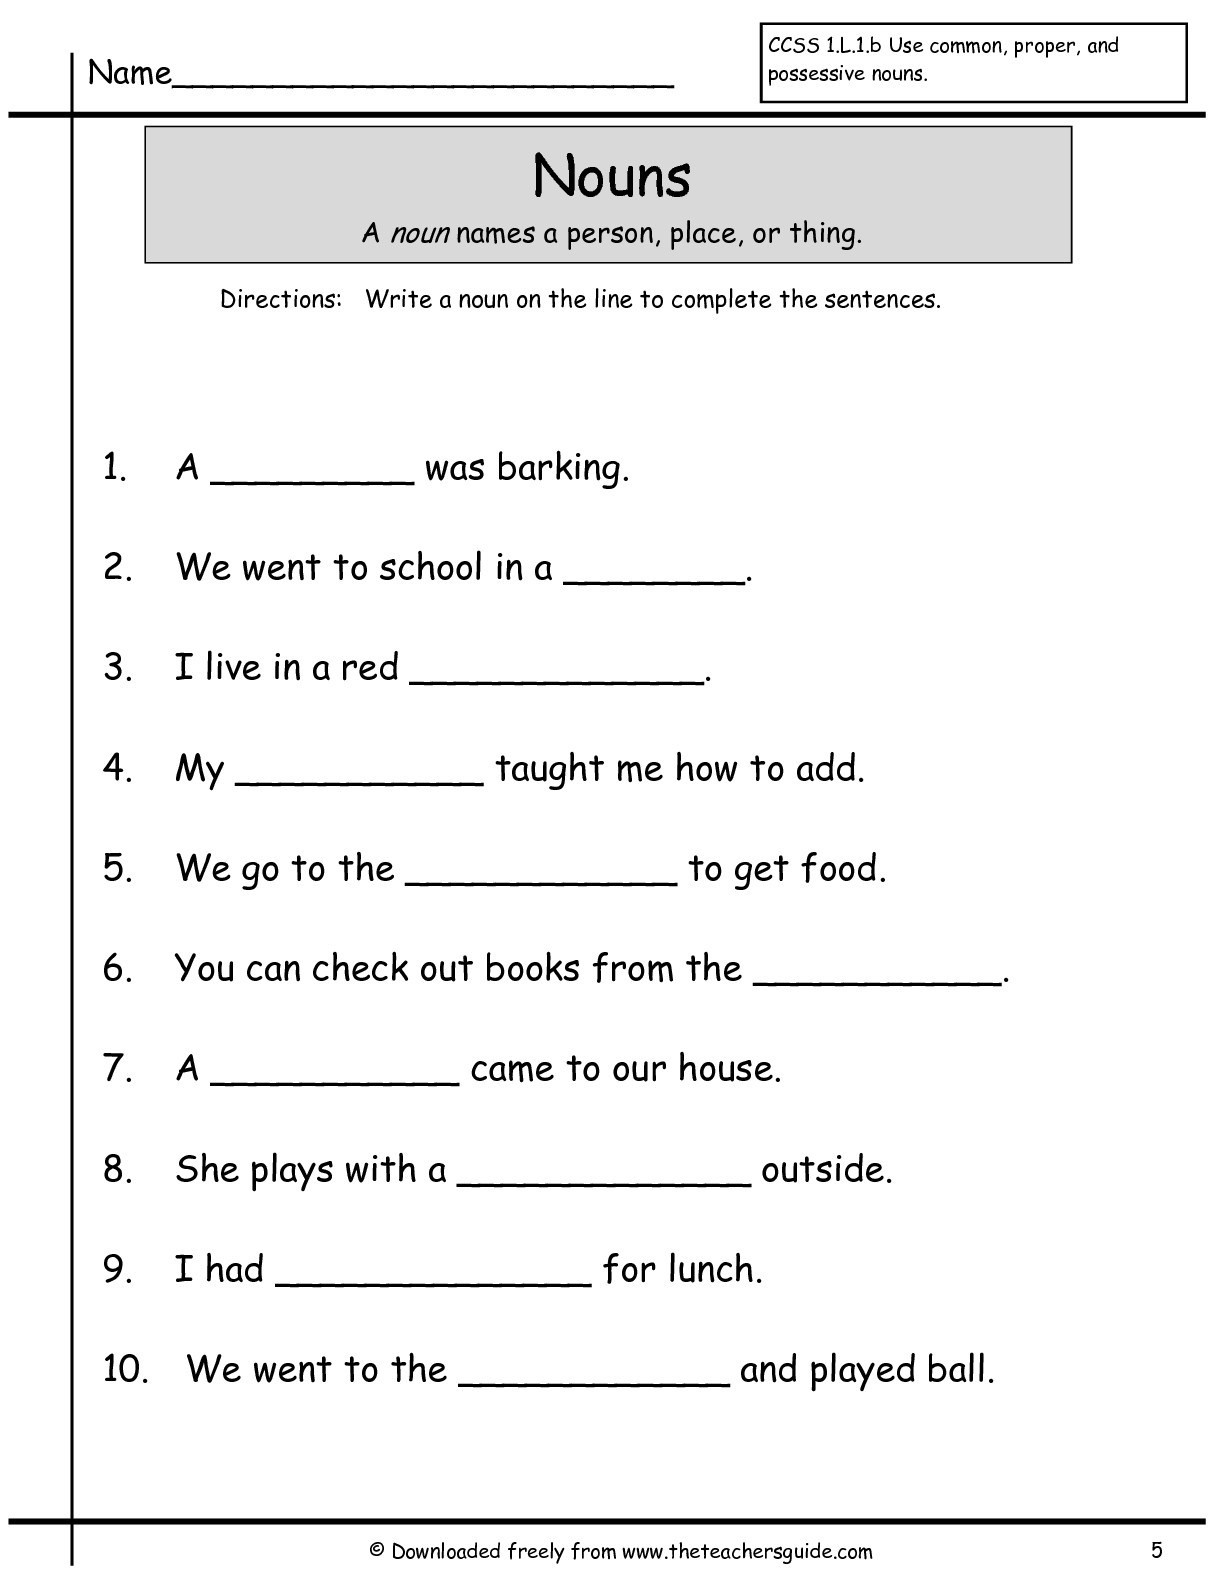 4th Grade History Worksheets Globalpublicpolicywatch Page 202 Italian Culture Worksheets